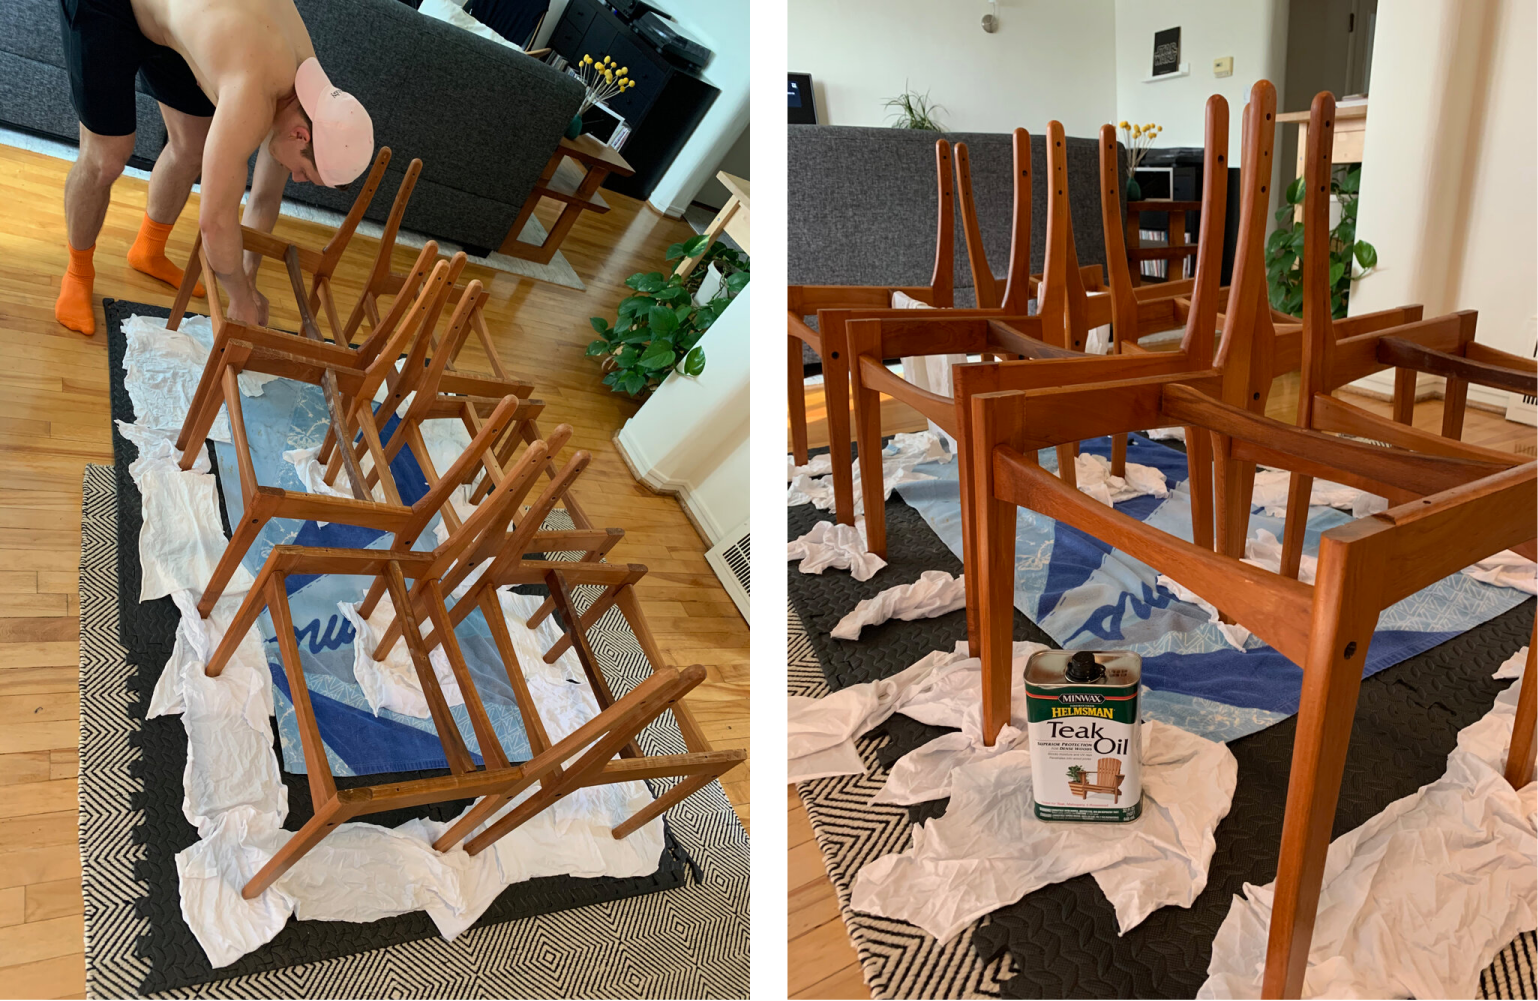 Photos showing chair frames sitting on towels as teak oil is applied